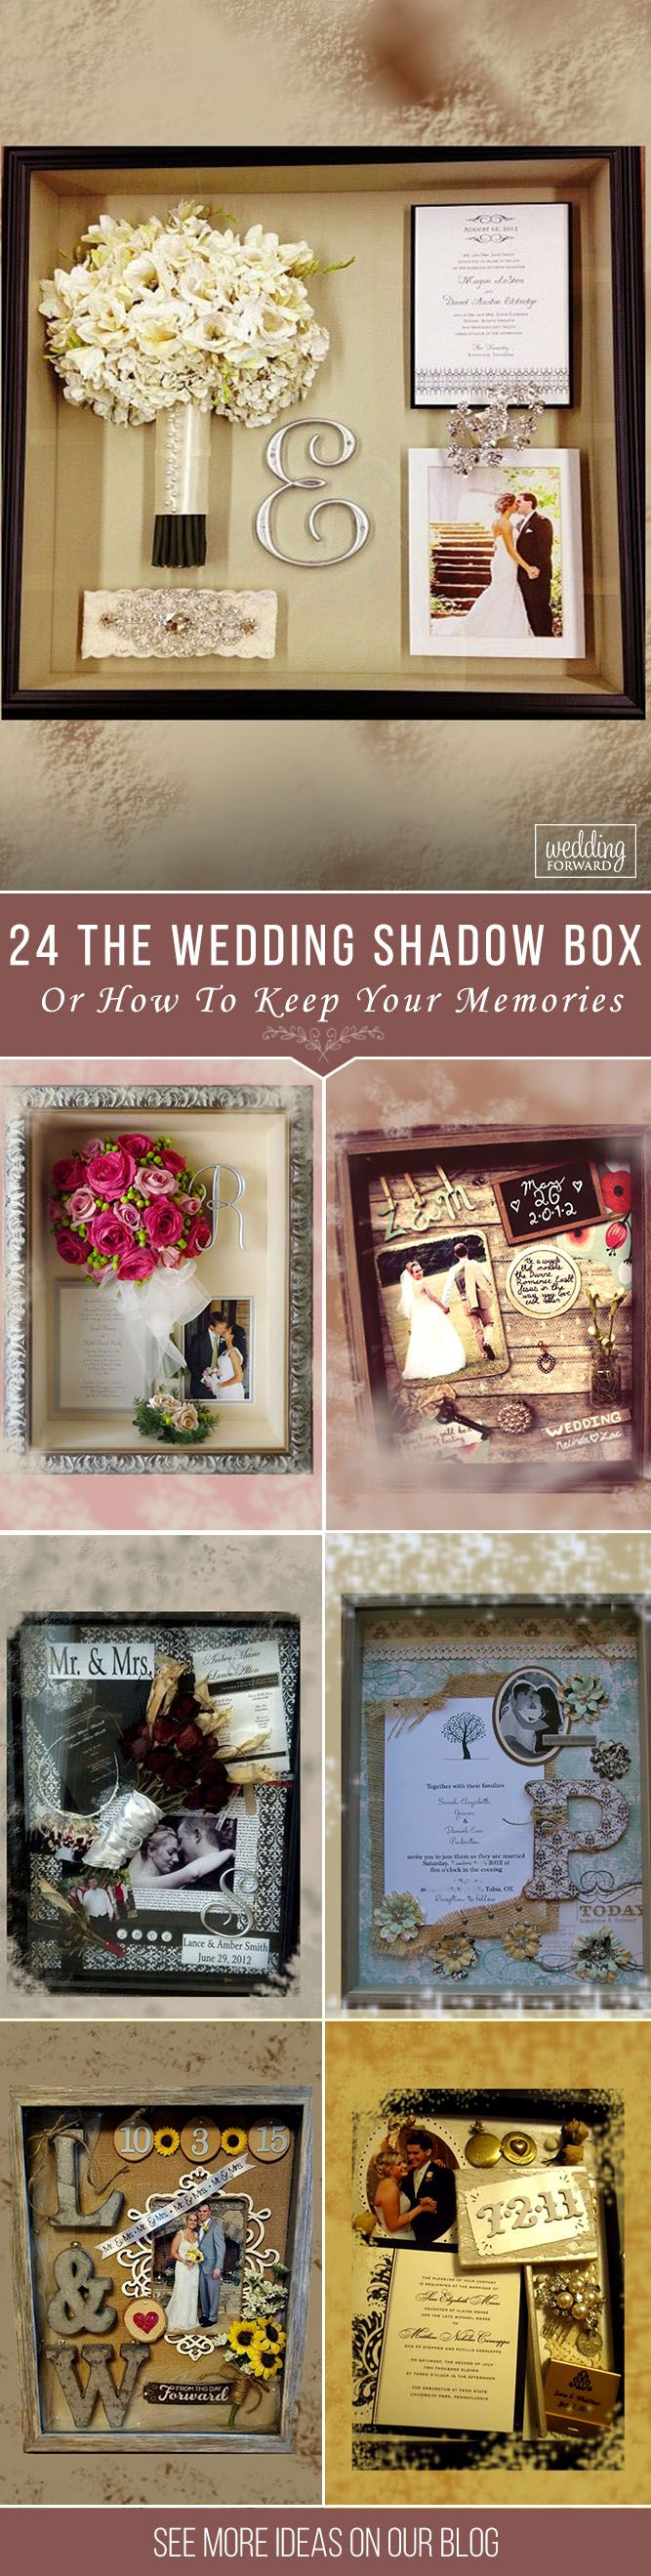 The Wedding Shadow Box Or How To Keep Your Memories ❤ A small box that holds the most wonderful memories of a special day. Many brides make it by yourself and gather in a wedding shadow box bouquet, a dress. See more: http://www.weddingforward.com/wedding-shadow-box/ #wedding #decorations